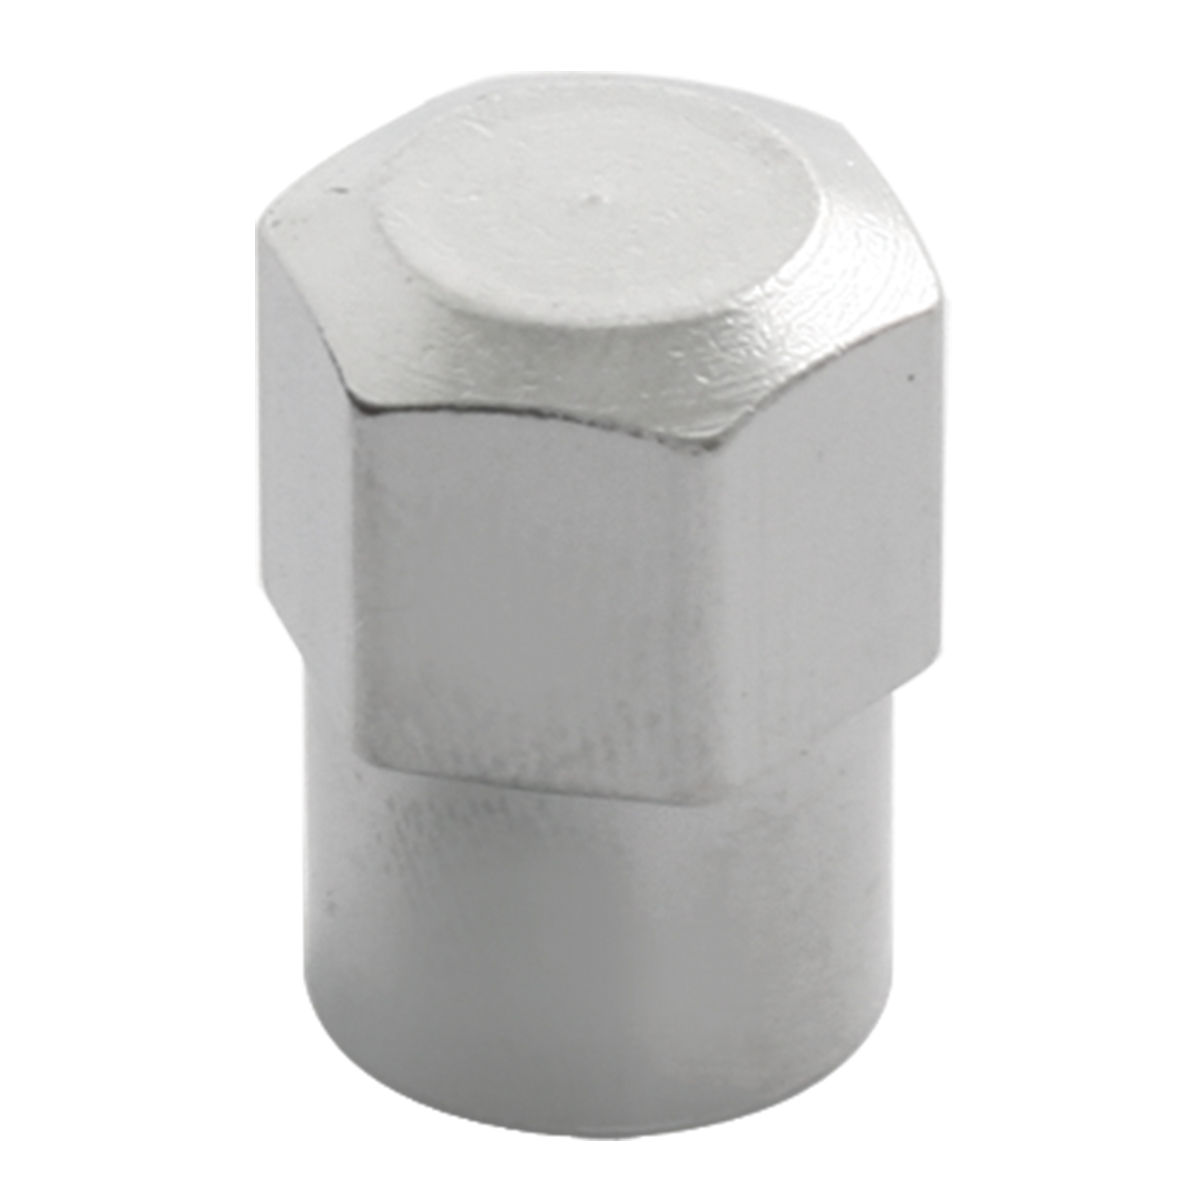 Chrome Plated Steel Valve Cap Set